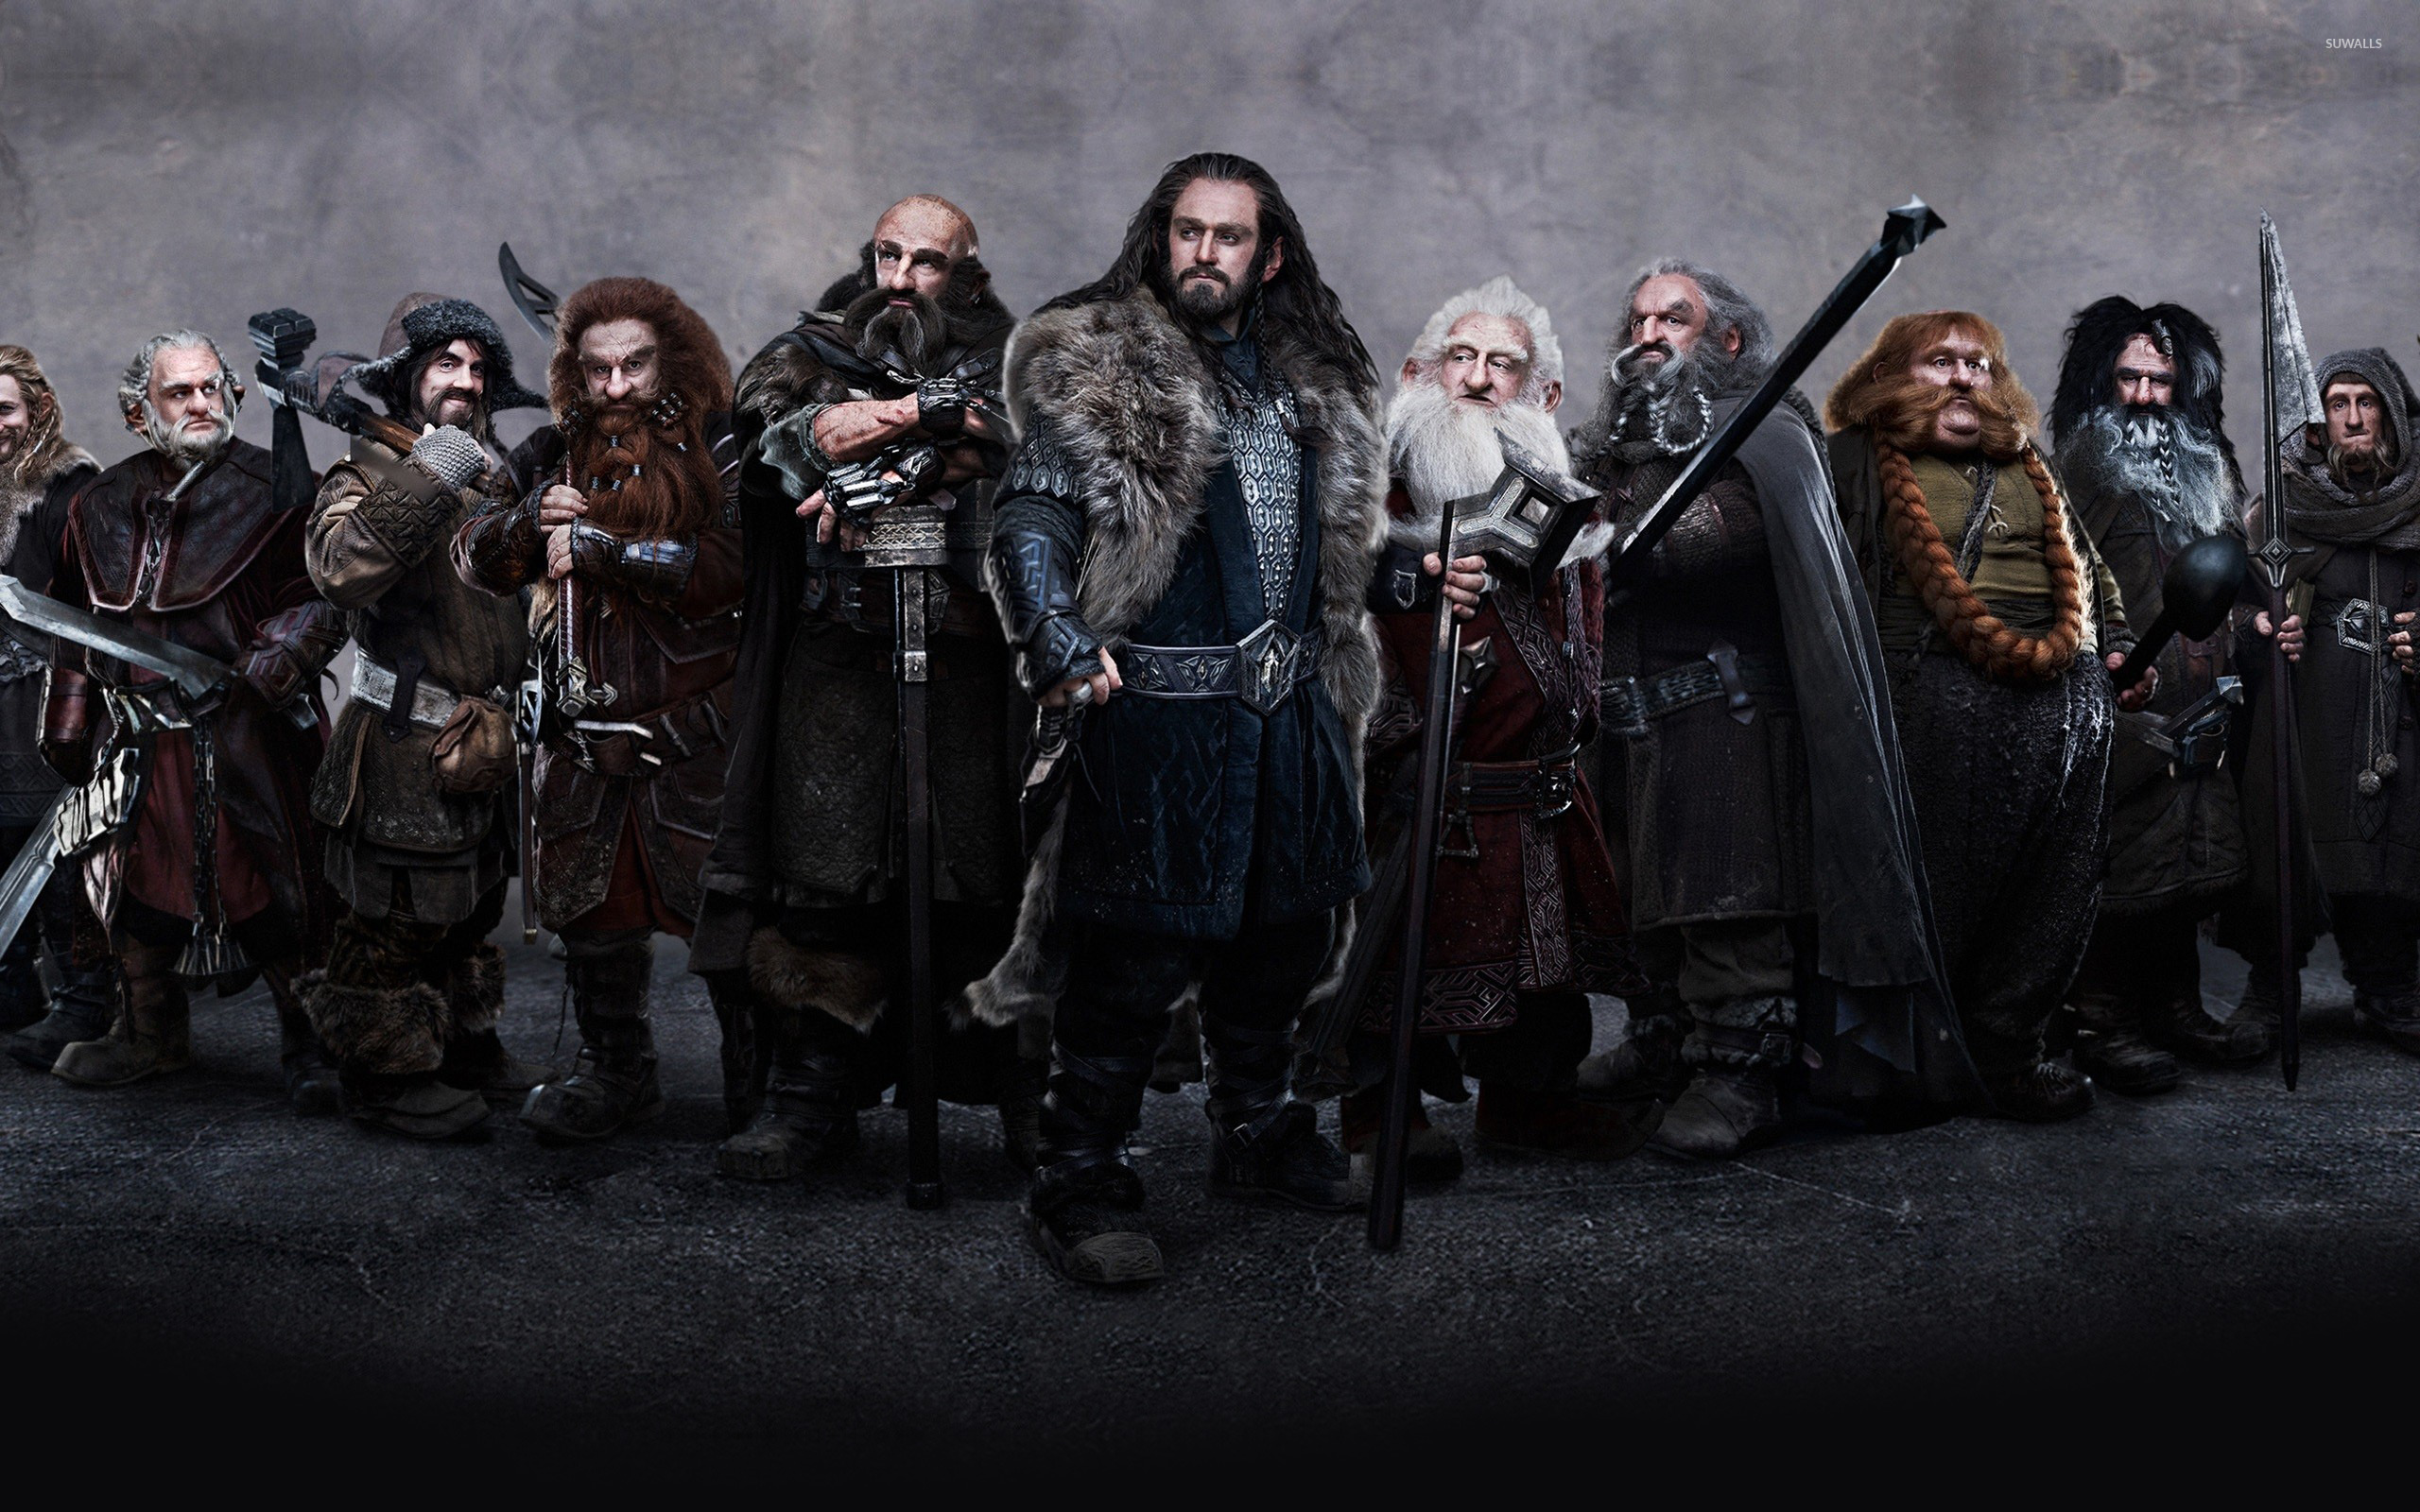 The Hobbit wallpaper   Movie wallpapers   11476 1366x768